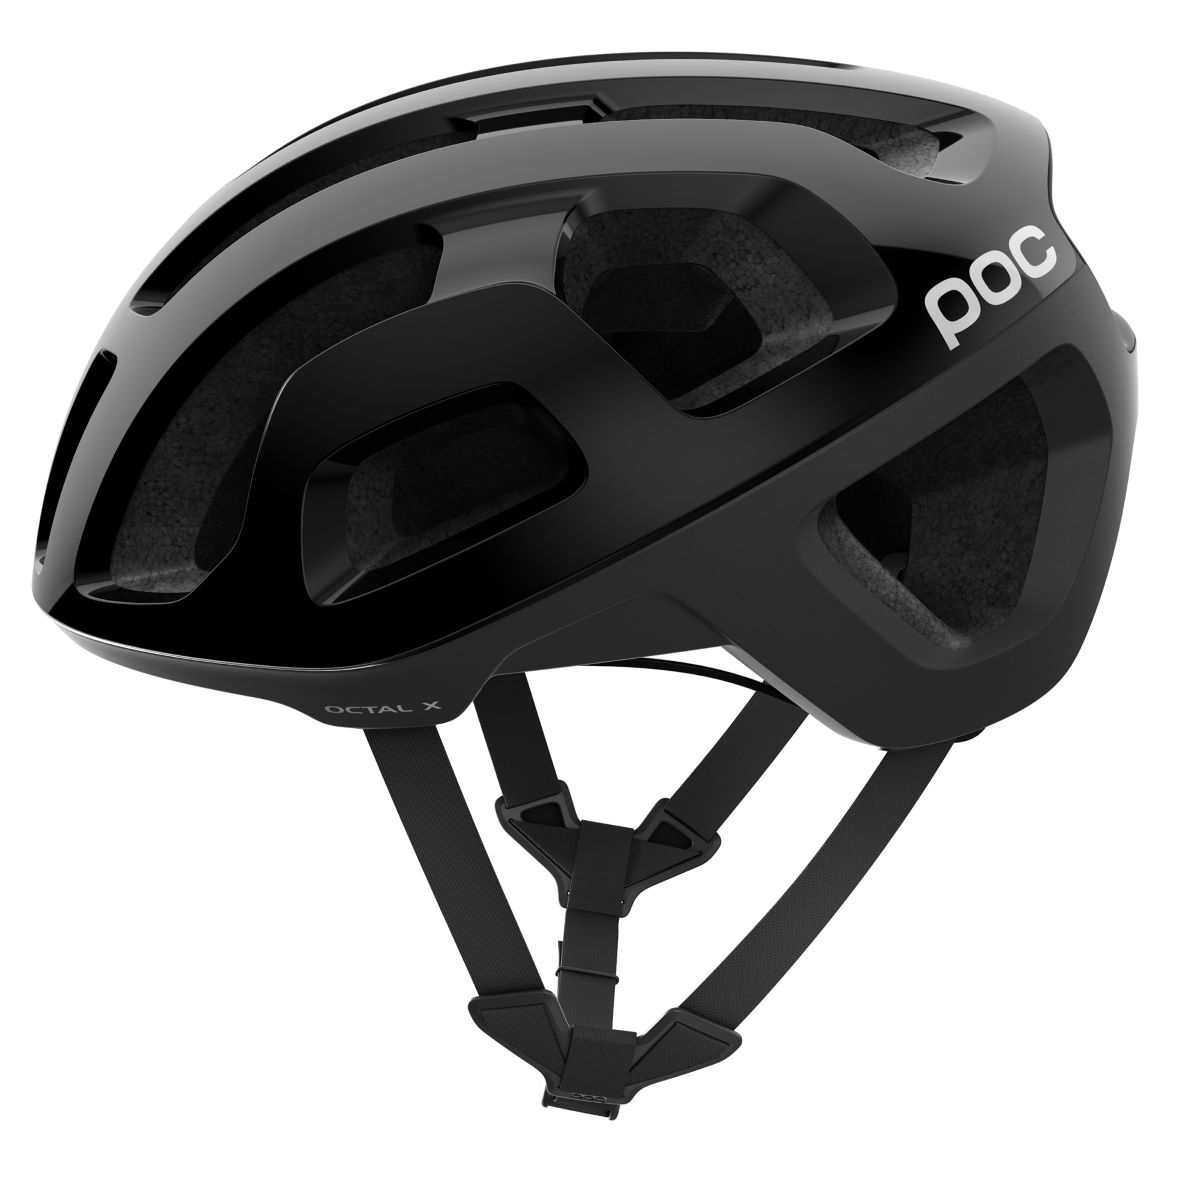 Casque POC Octal X - S Carbon Black Casques